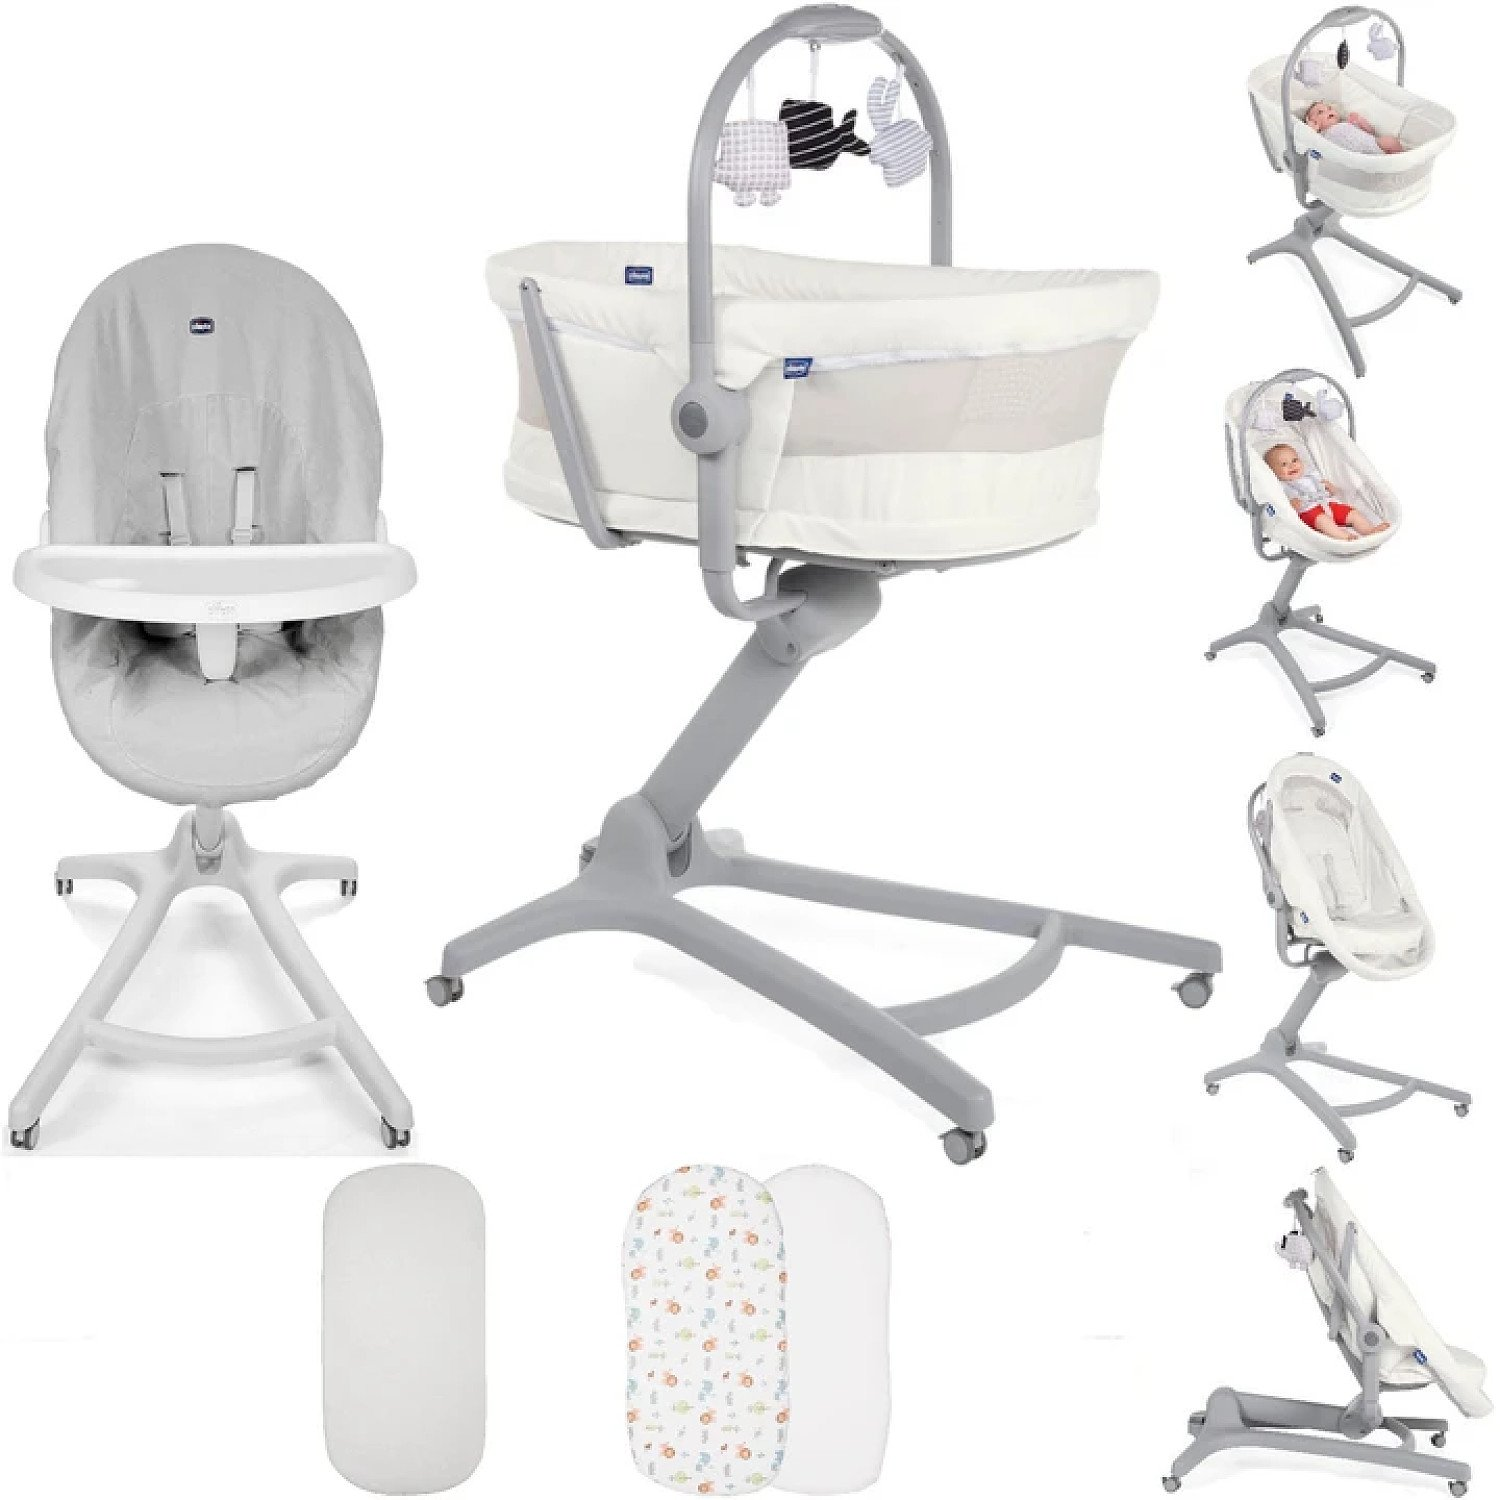 Chicco 5 Piece 4in1 Baby Hug Seat, High Chair & Crib Meal Time Nursery Bundle - White Snow